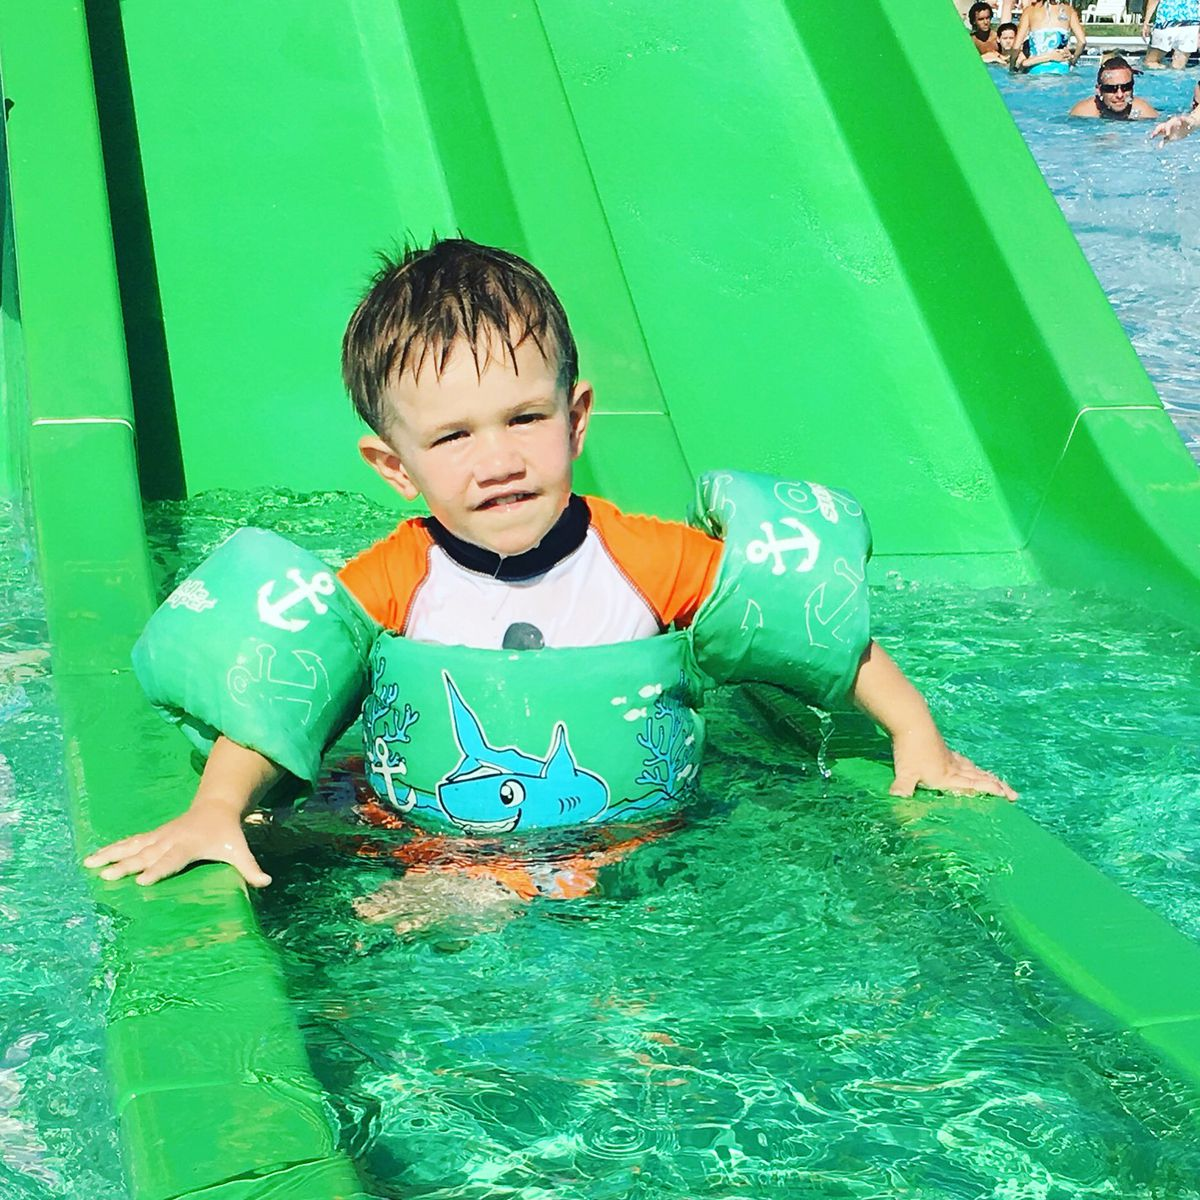 Levi Hughes loved his wraparound flotation device, but Nicole Hughes believes it gave her 3-year-old son a false sense of confidence. He drowned in 2018 on a family vacation.